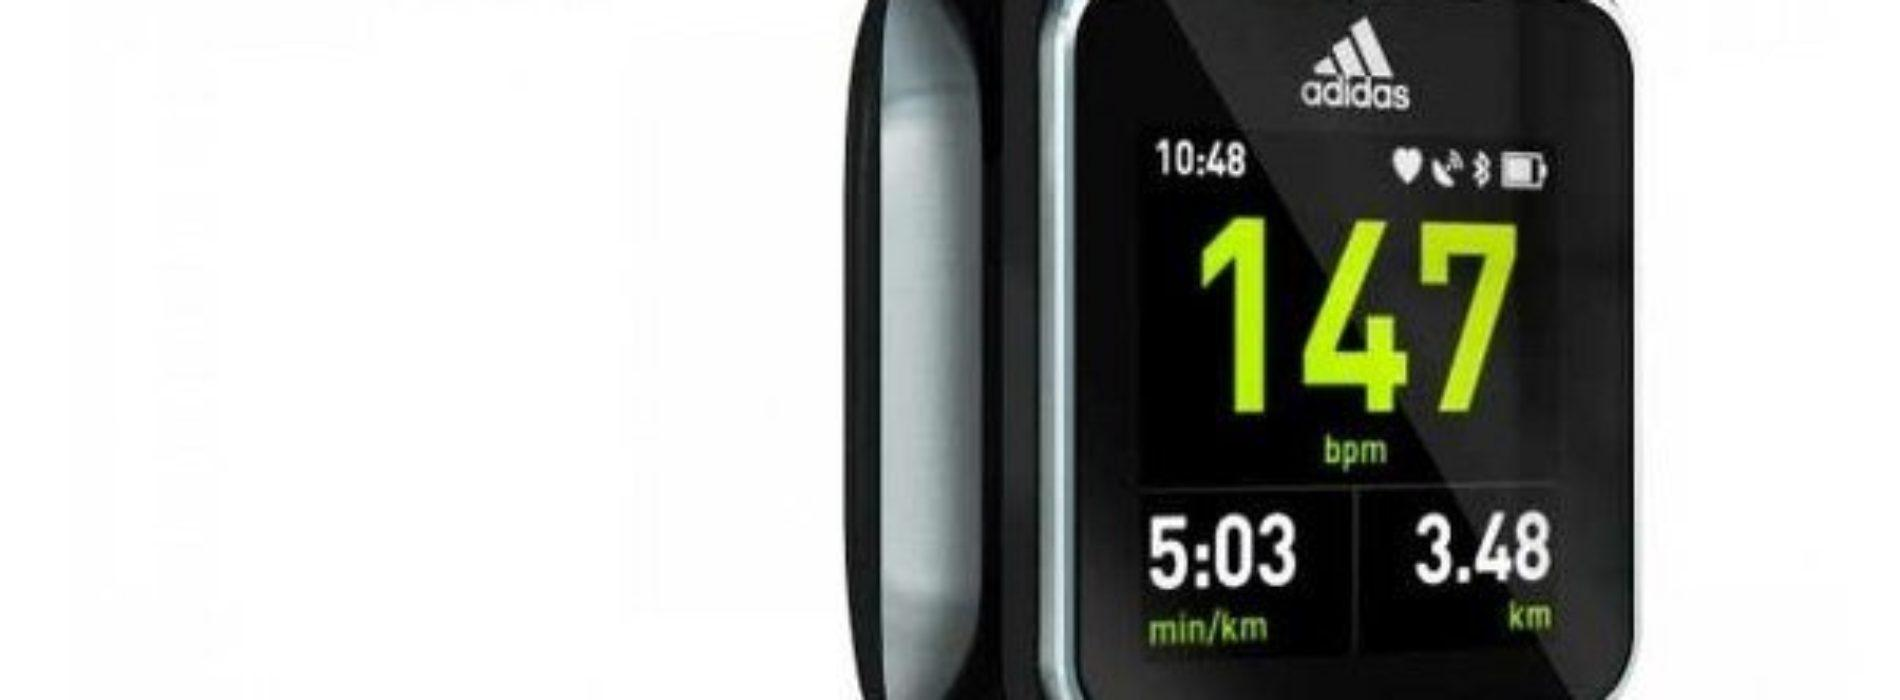 Adidas pone fecha de caducidad a los miCoach Smart Run y SPEED_CELL Bluetooth